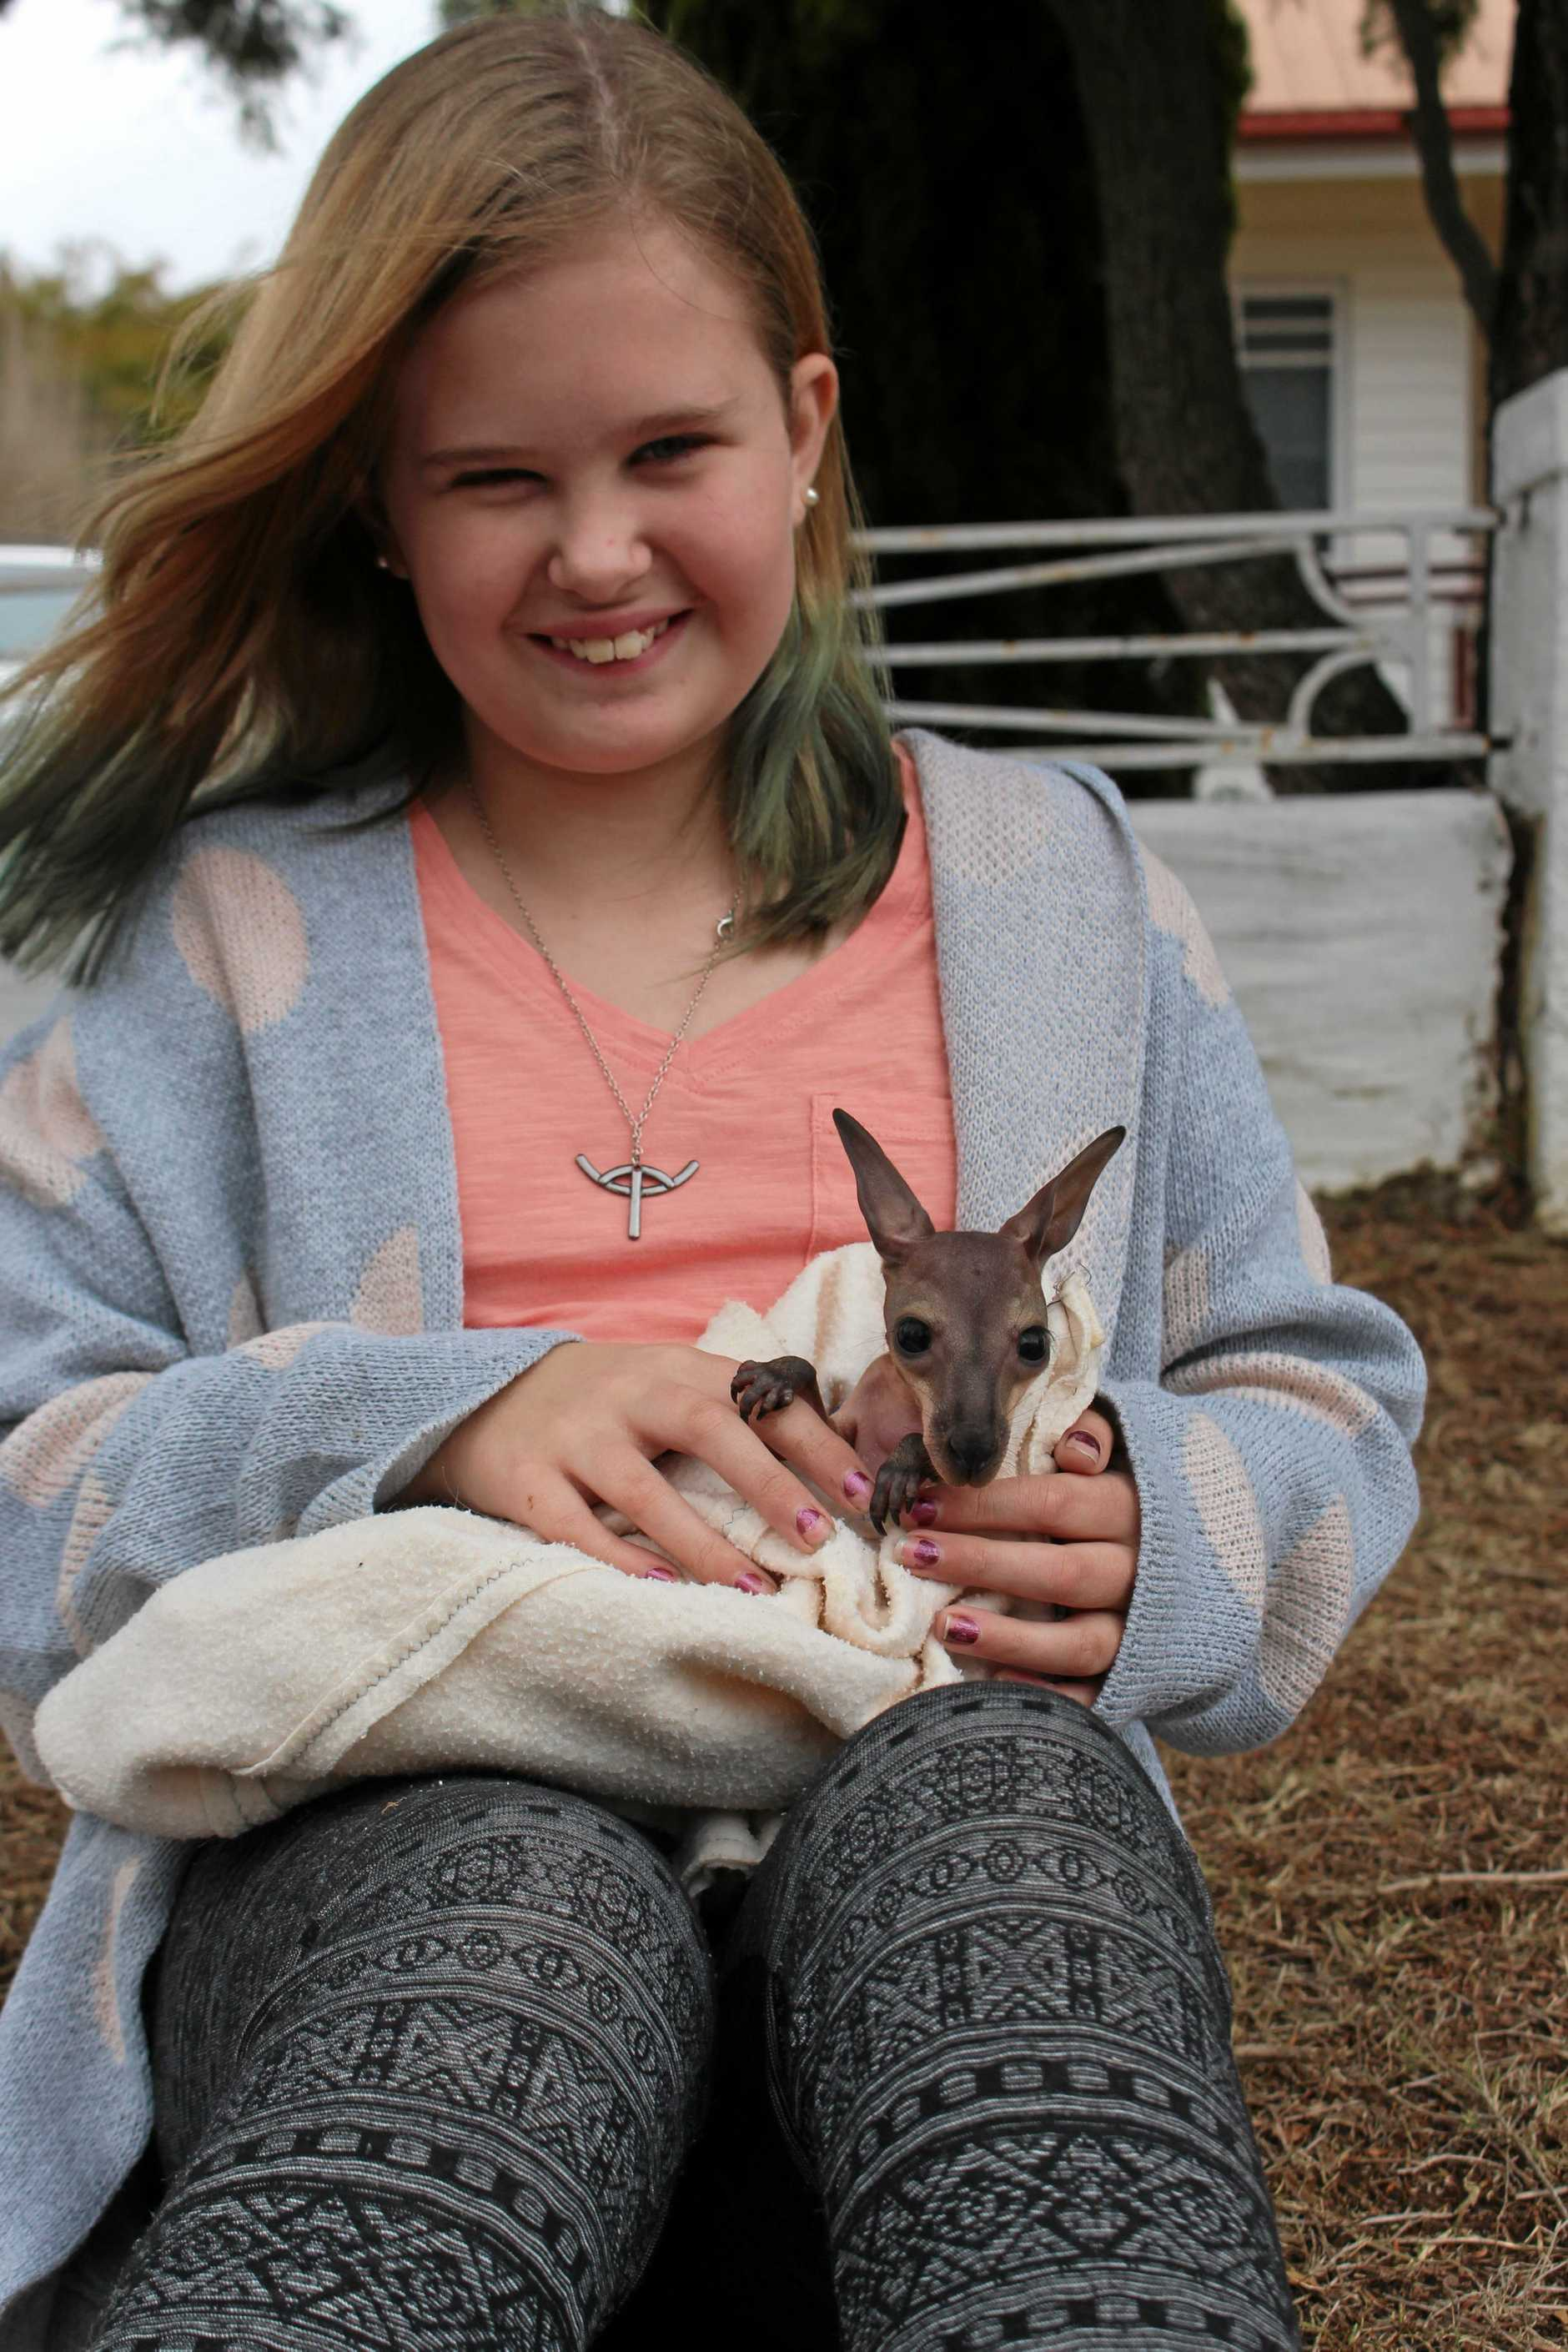 RESCUE ROO: Lily Hughes has been helping take care of 6-month-old